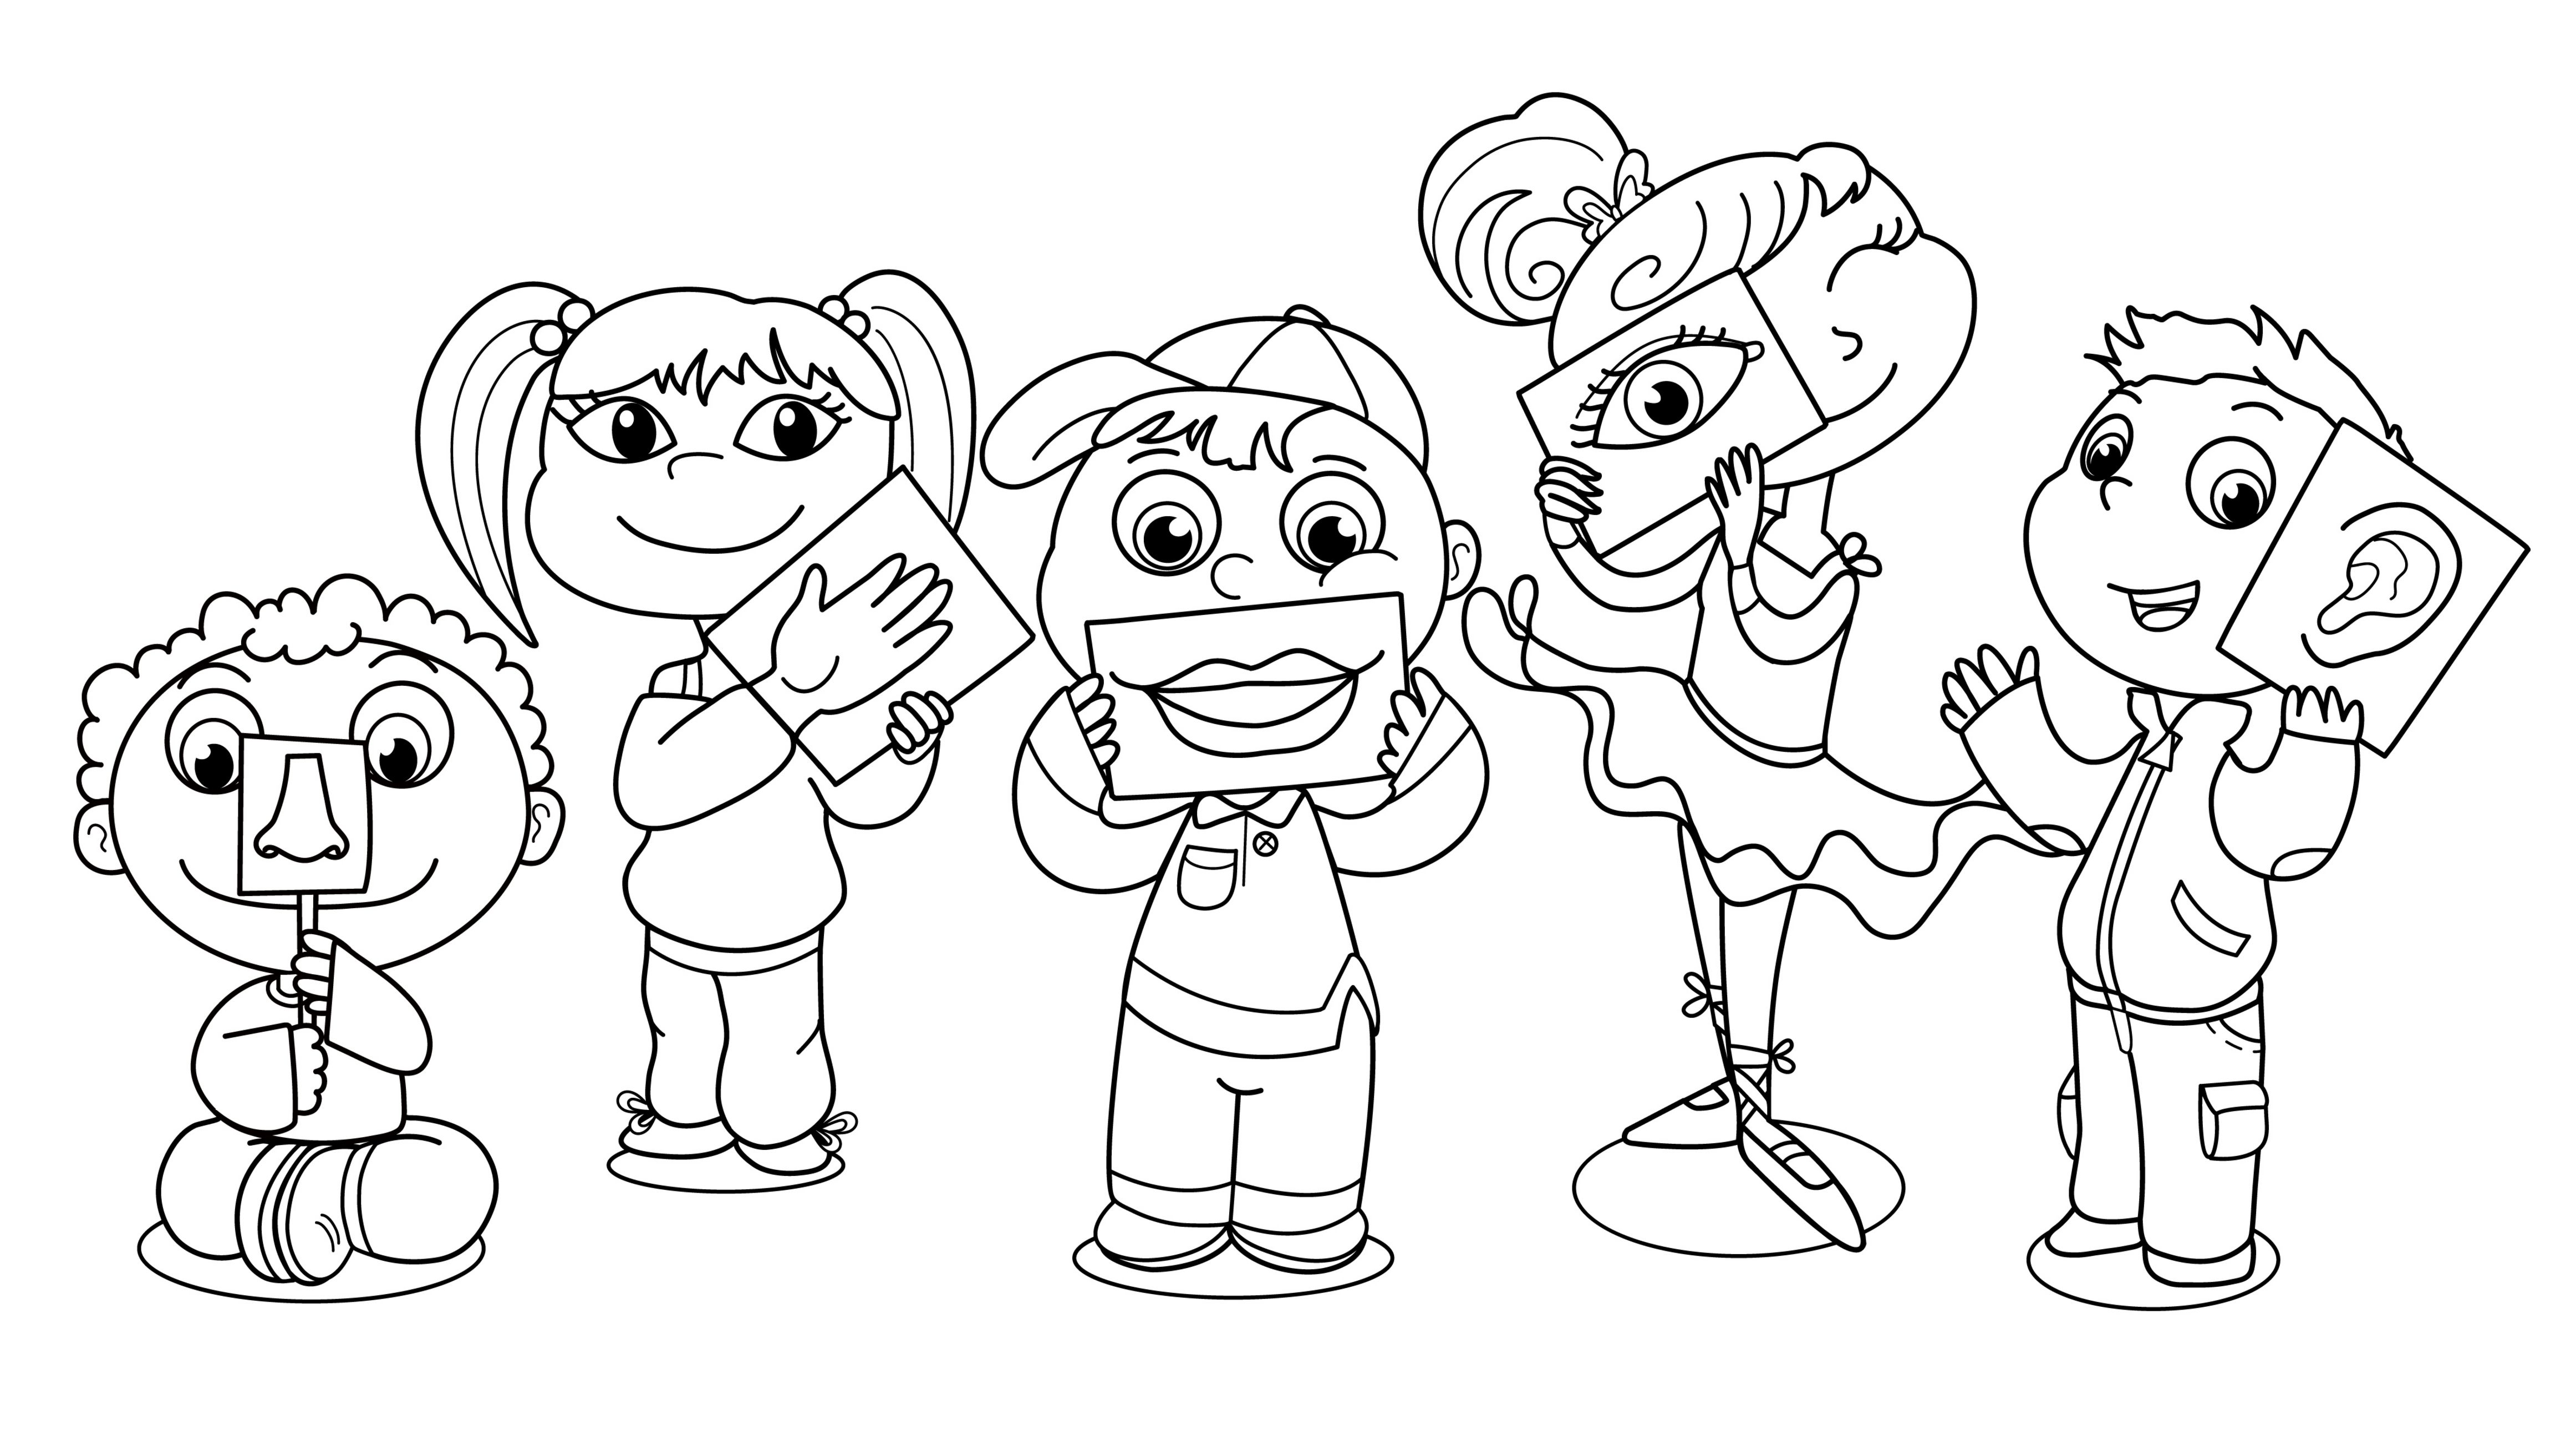 Fives Senses Coloring Page.